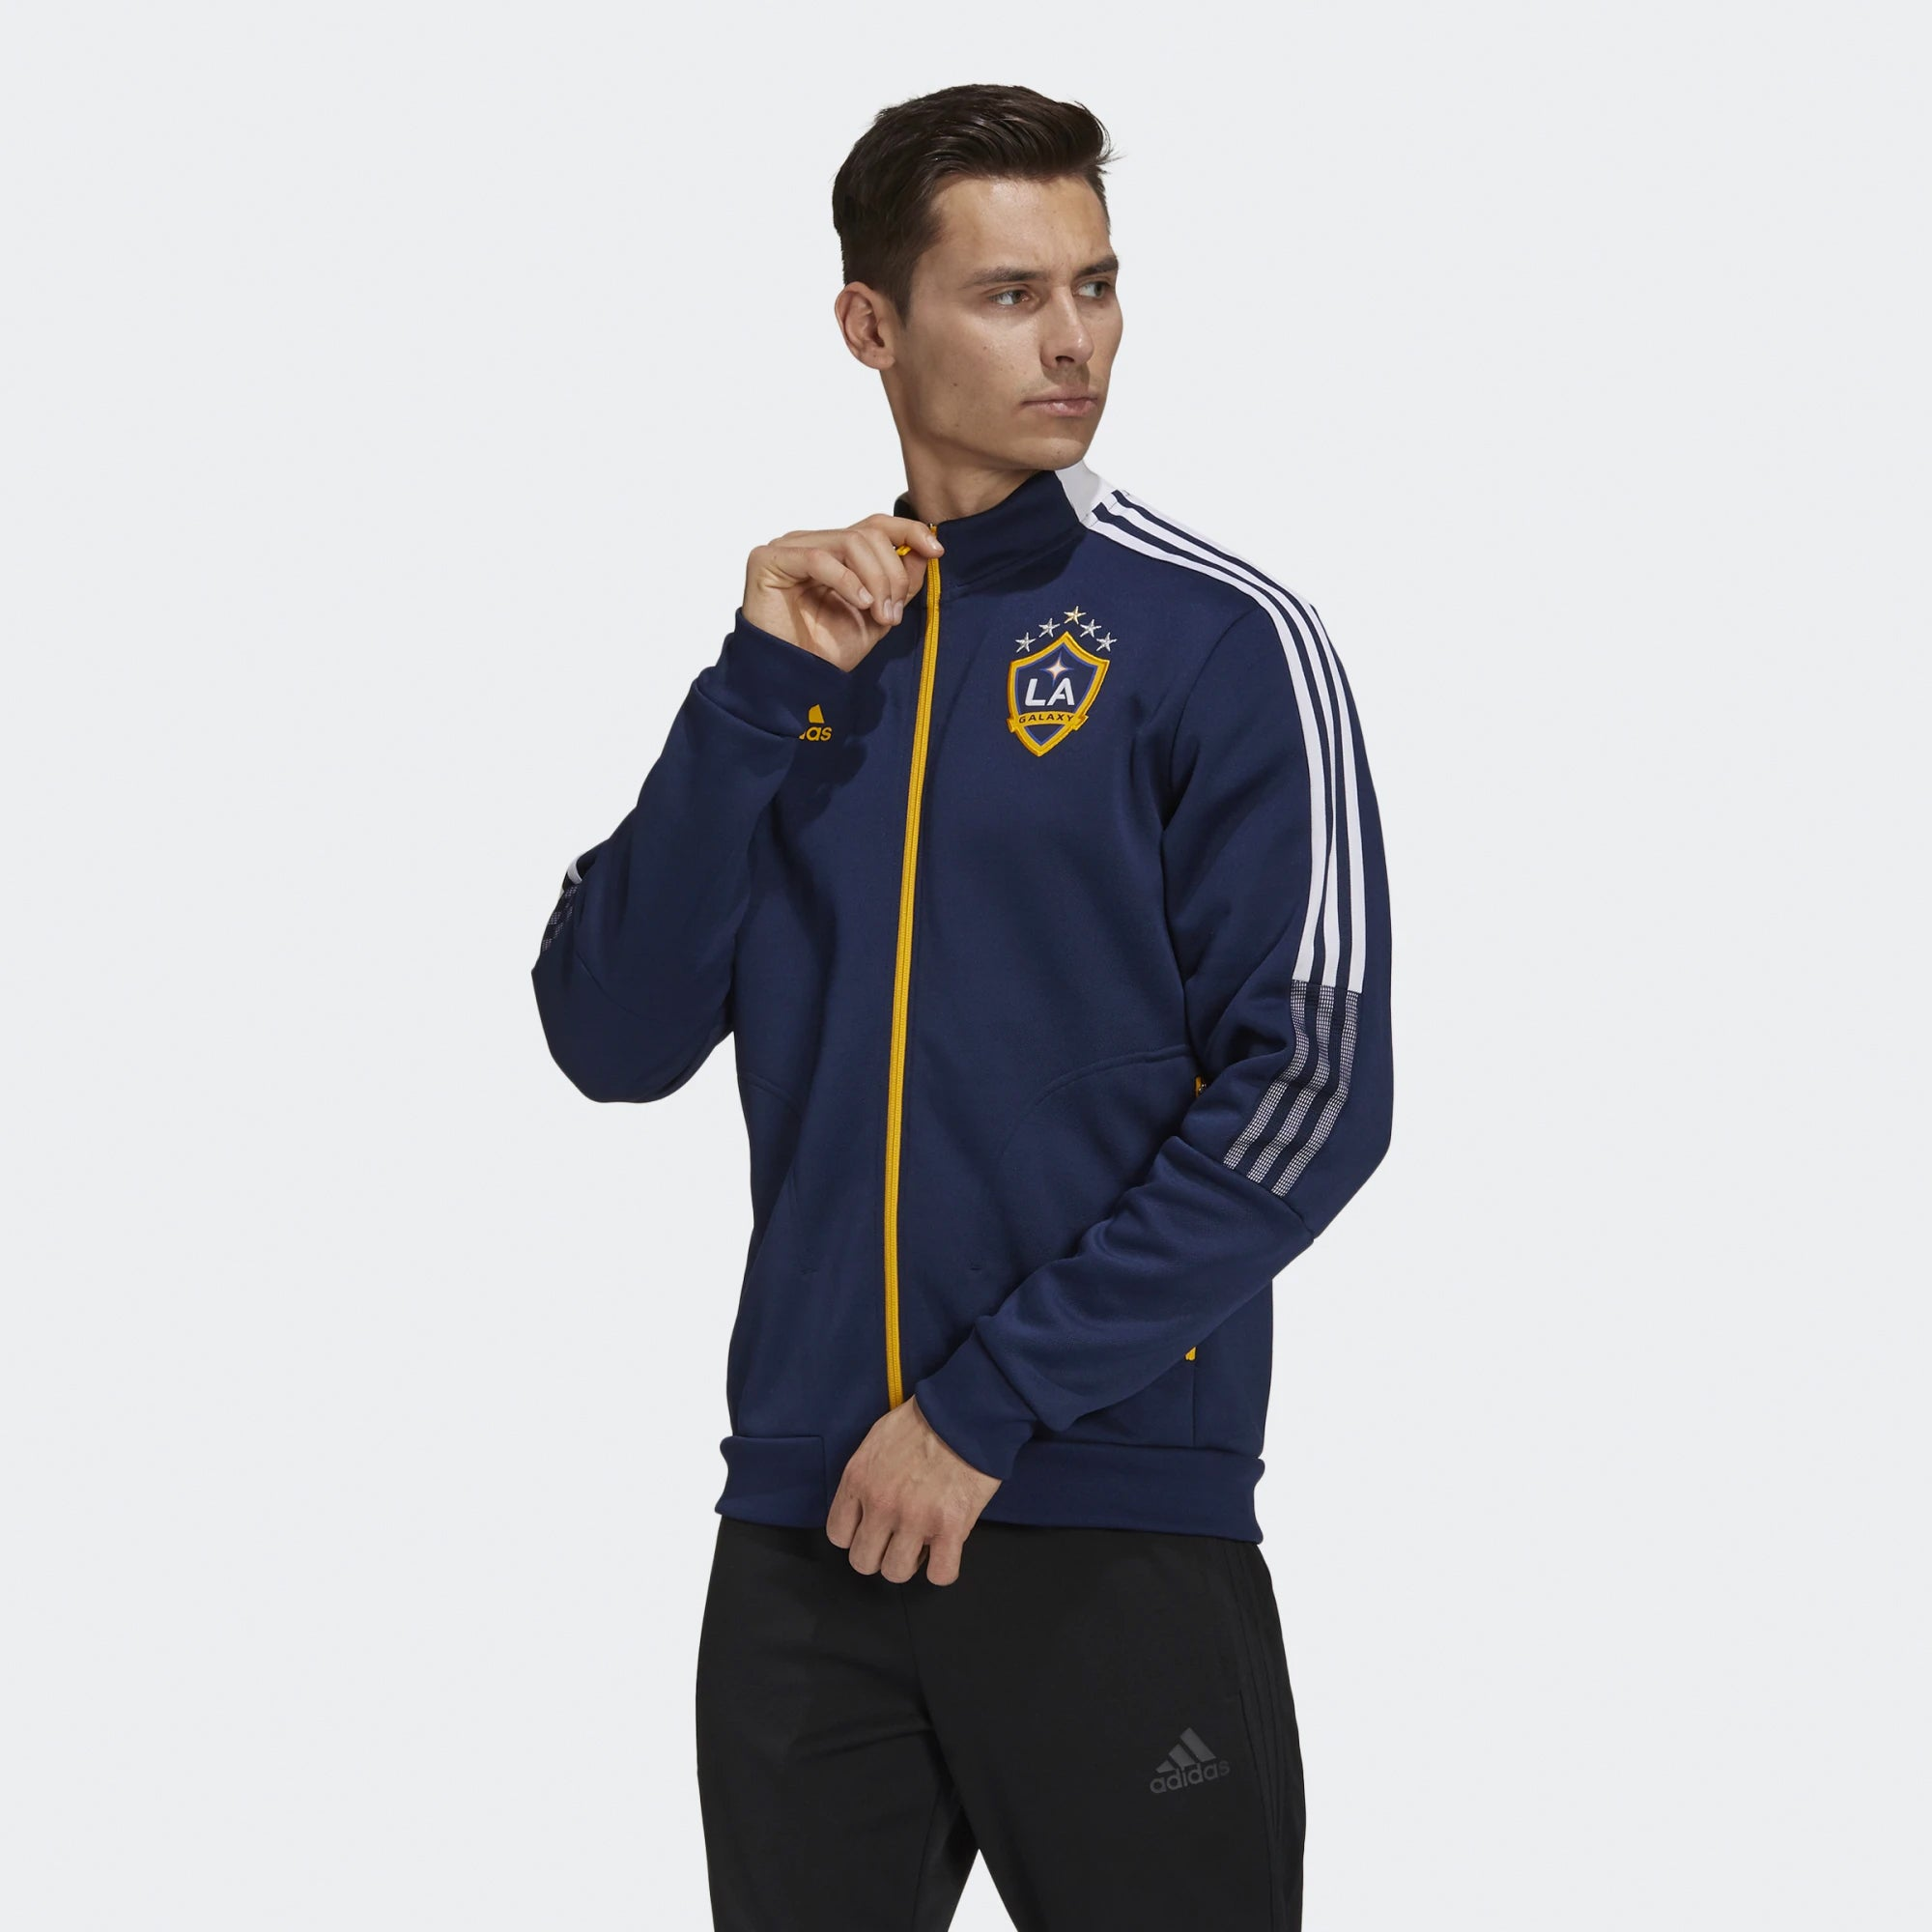 LA Galaxy Anthem Jacket 21/22 Men's